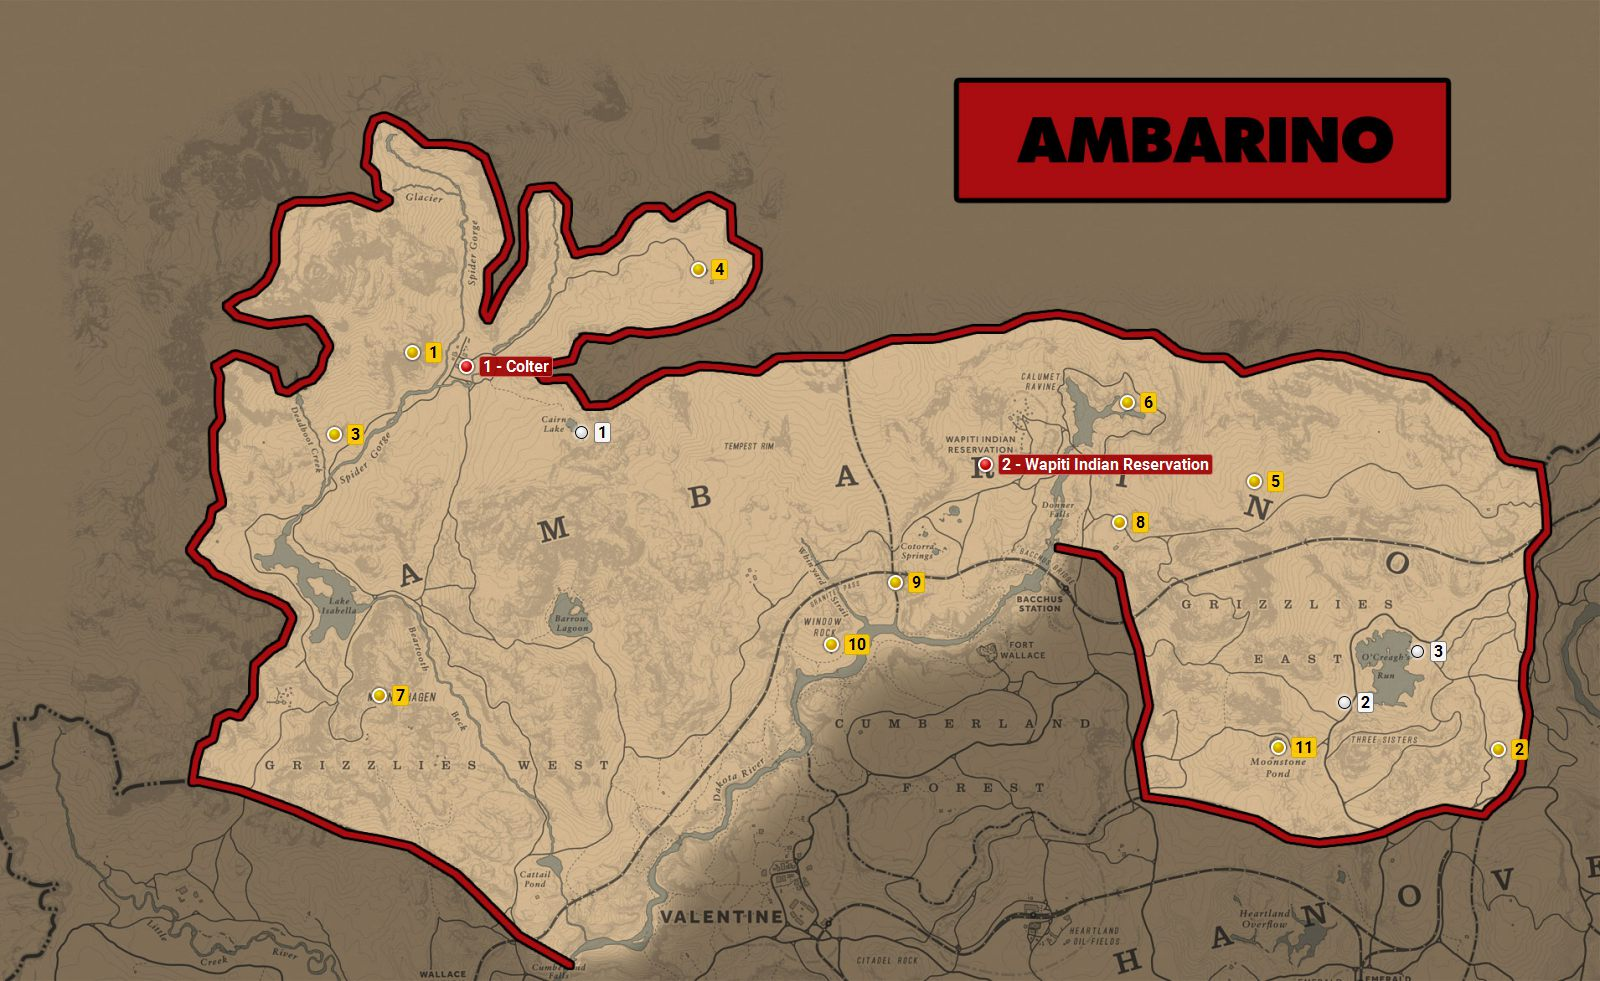 Red Dead 2 World Map.Ambarino Red Dead Redemption 2 World Atlas Map Red Dead